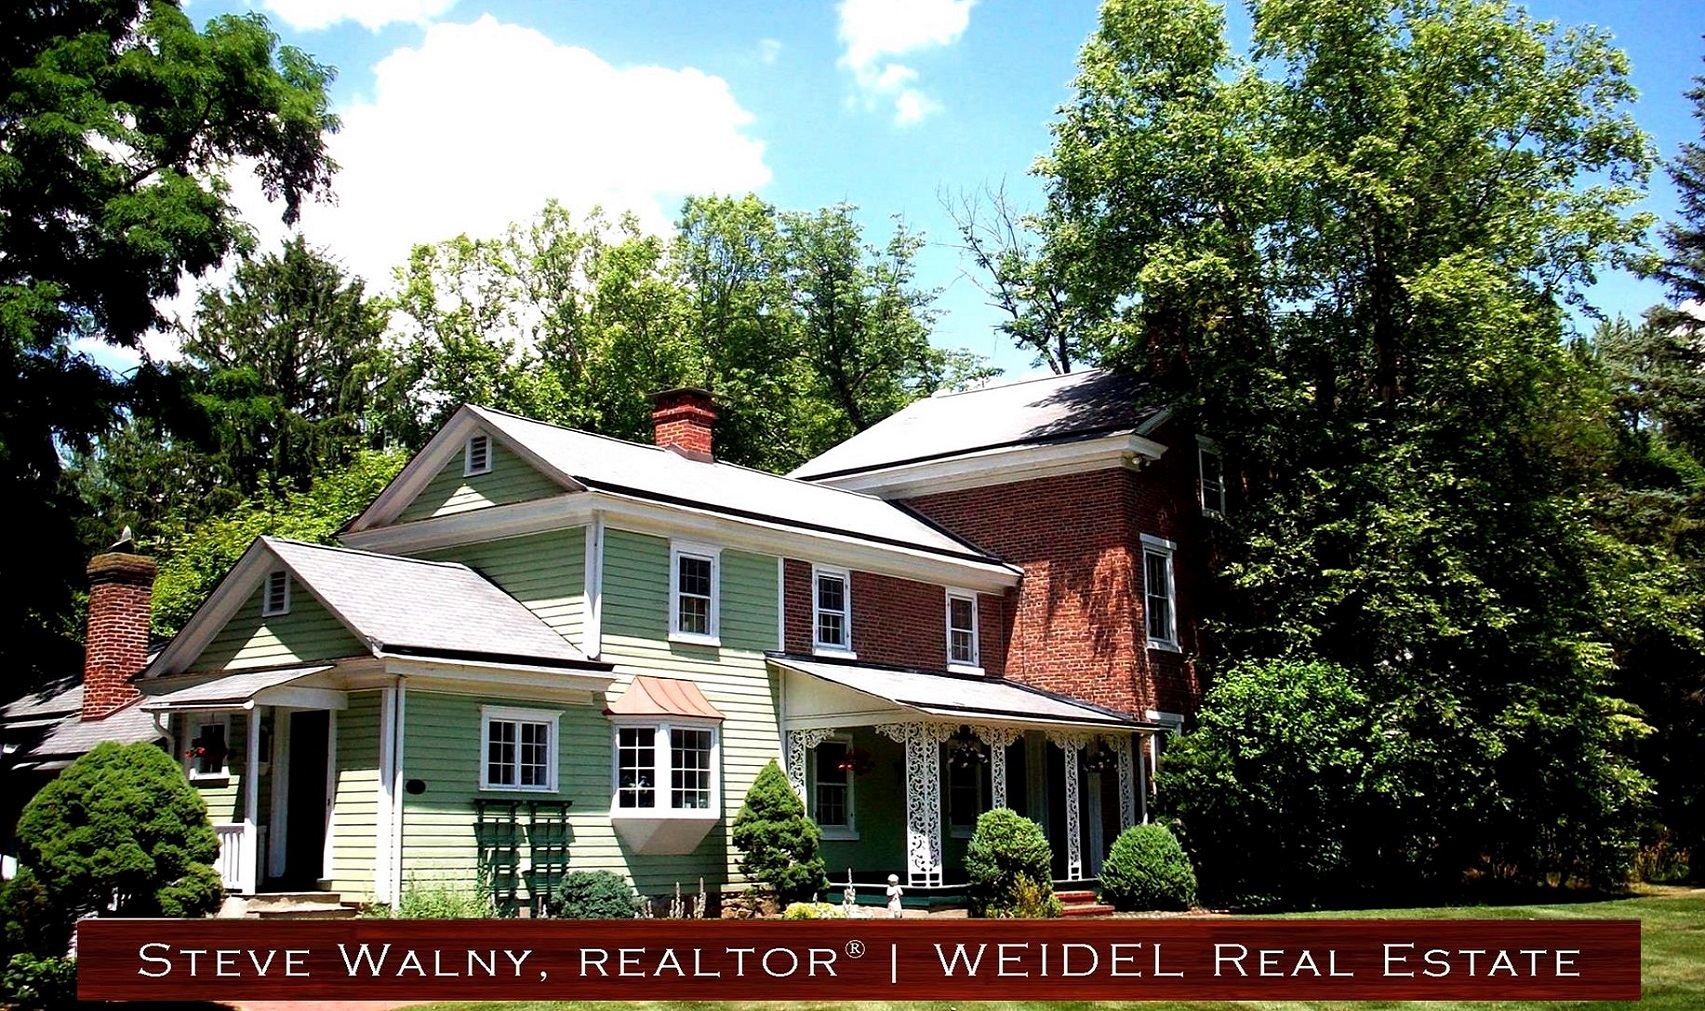 Homes of New Hope, Historic Homes In Bucks, WEIDEL Real Estate, New Hope Realtor, WEIDEL Realtors, New Hope Realtors, Steve Walny, Homes of New Hope